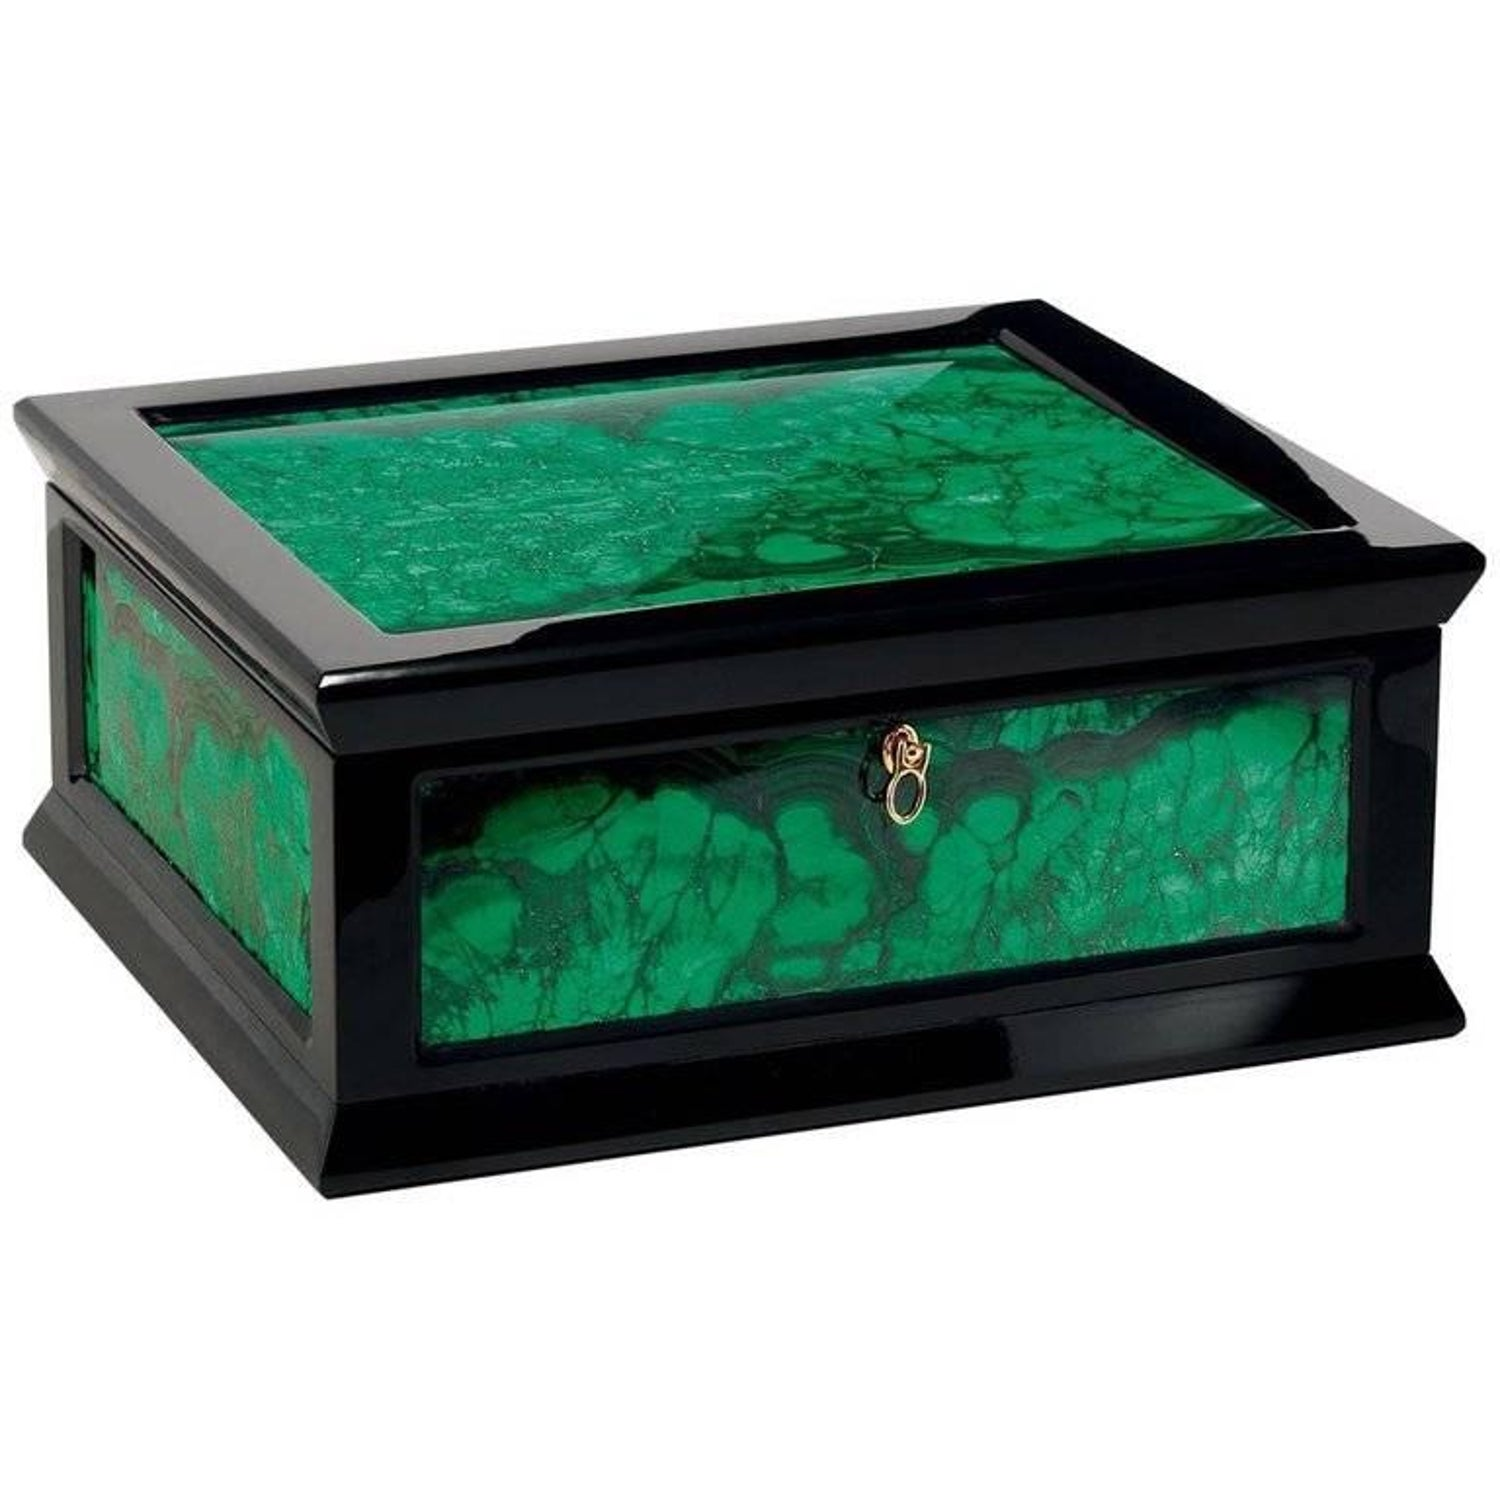 Jewelry Box in Glossy Black with Malachite Inserts by Agresti For Sale at 1stdibs